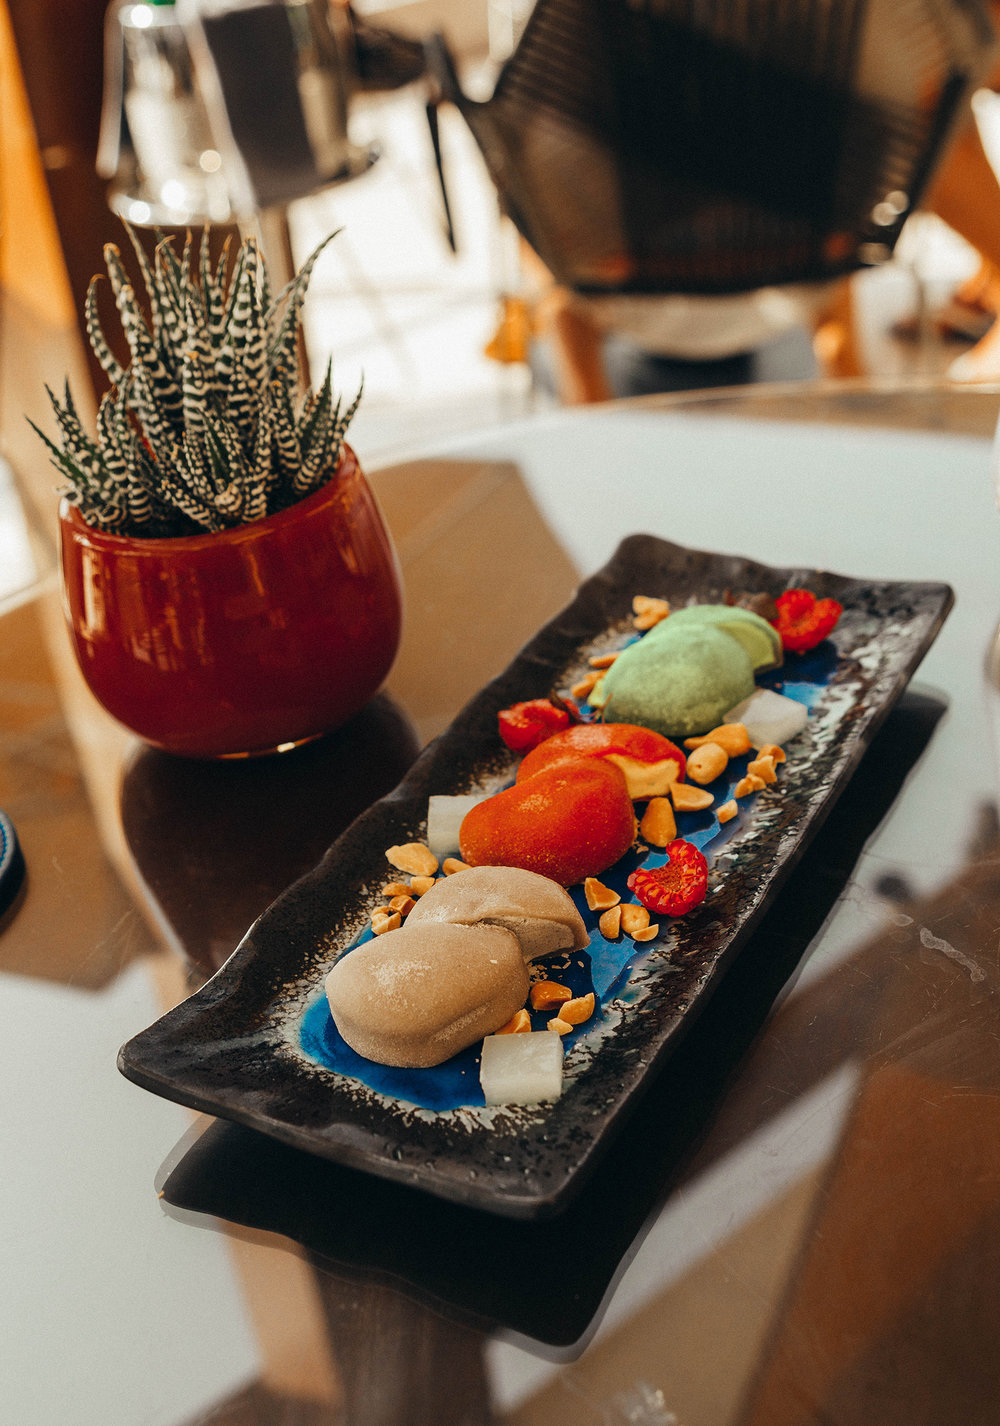 The Japanese gelato: mochi ice cream